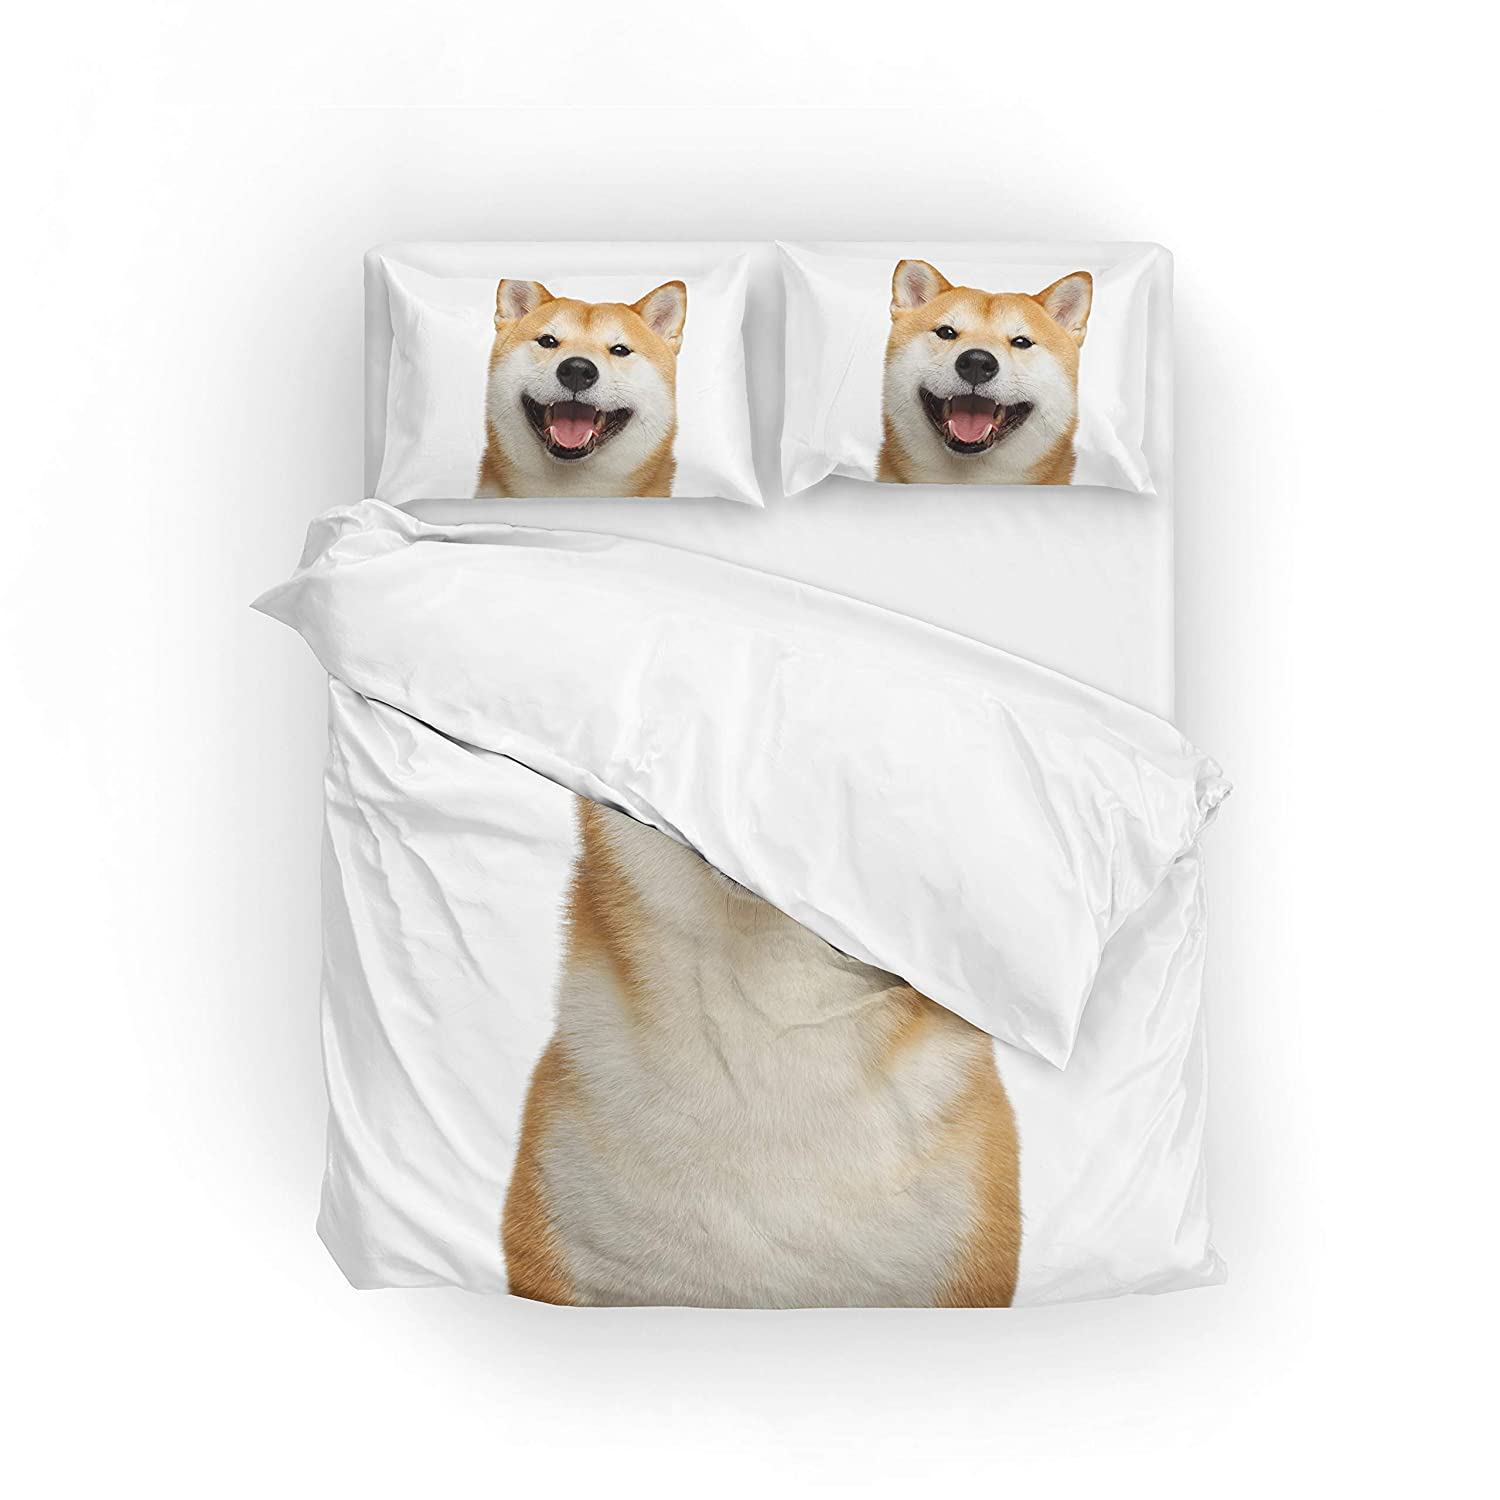 My Daily Smiling Shiba Inu Dog Duvet Cover Set Microfiber Polyester Quilt Bedding Set Twin/Single